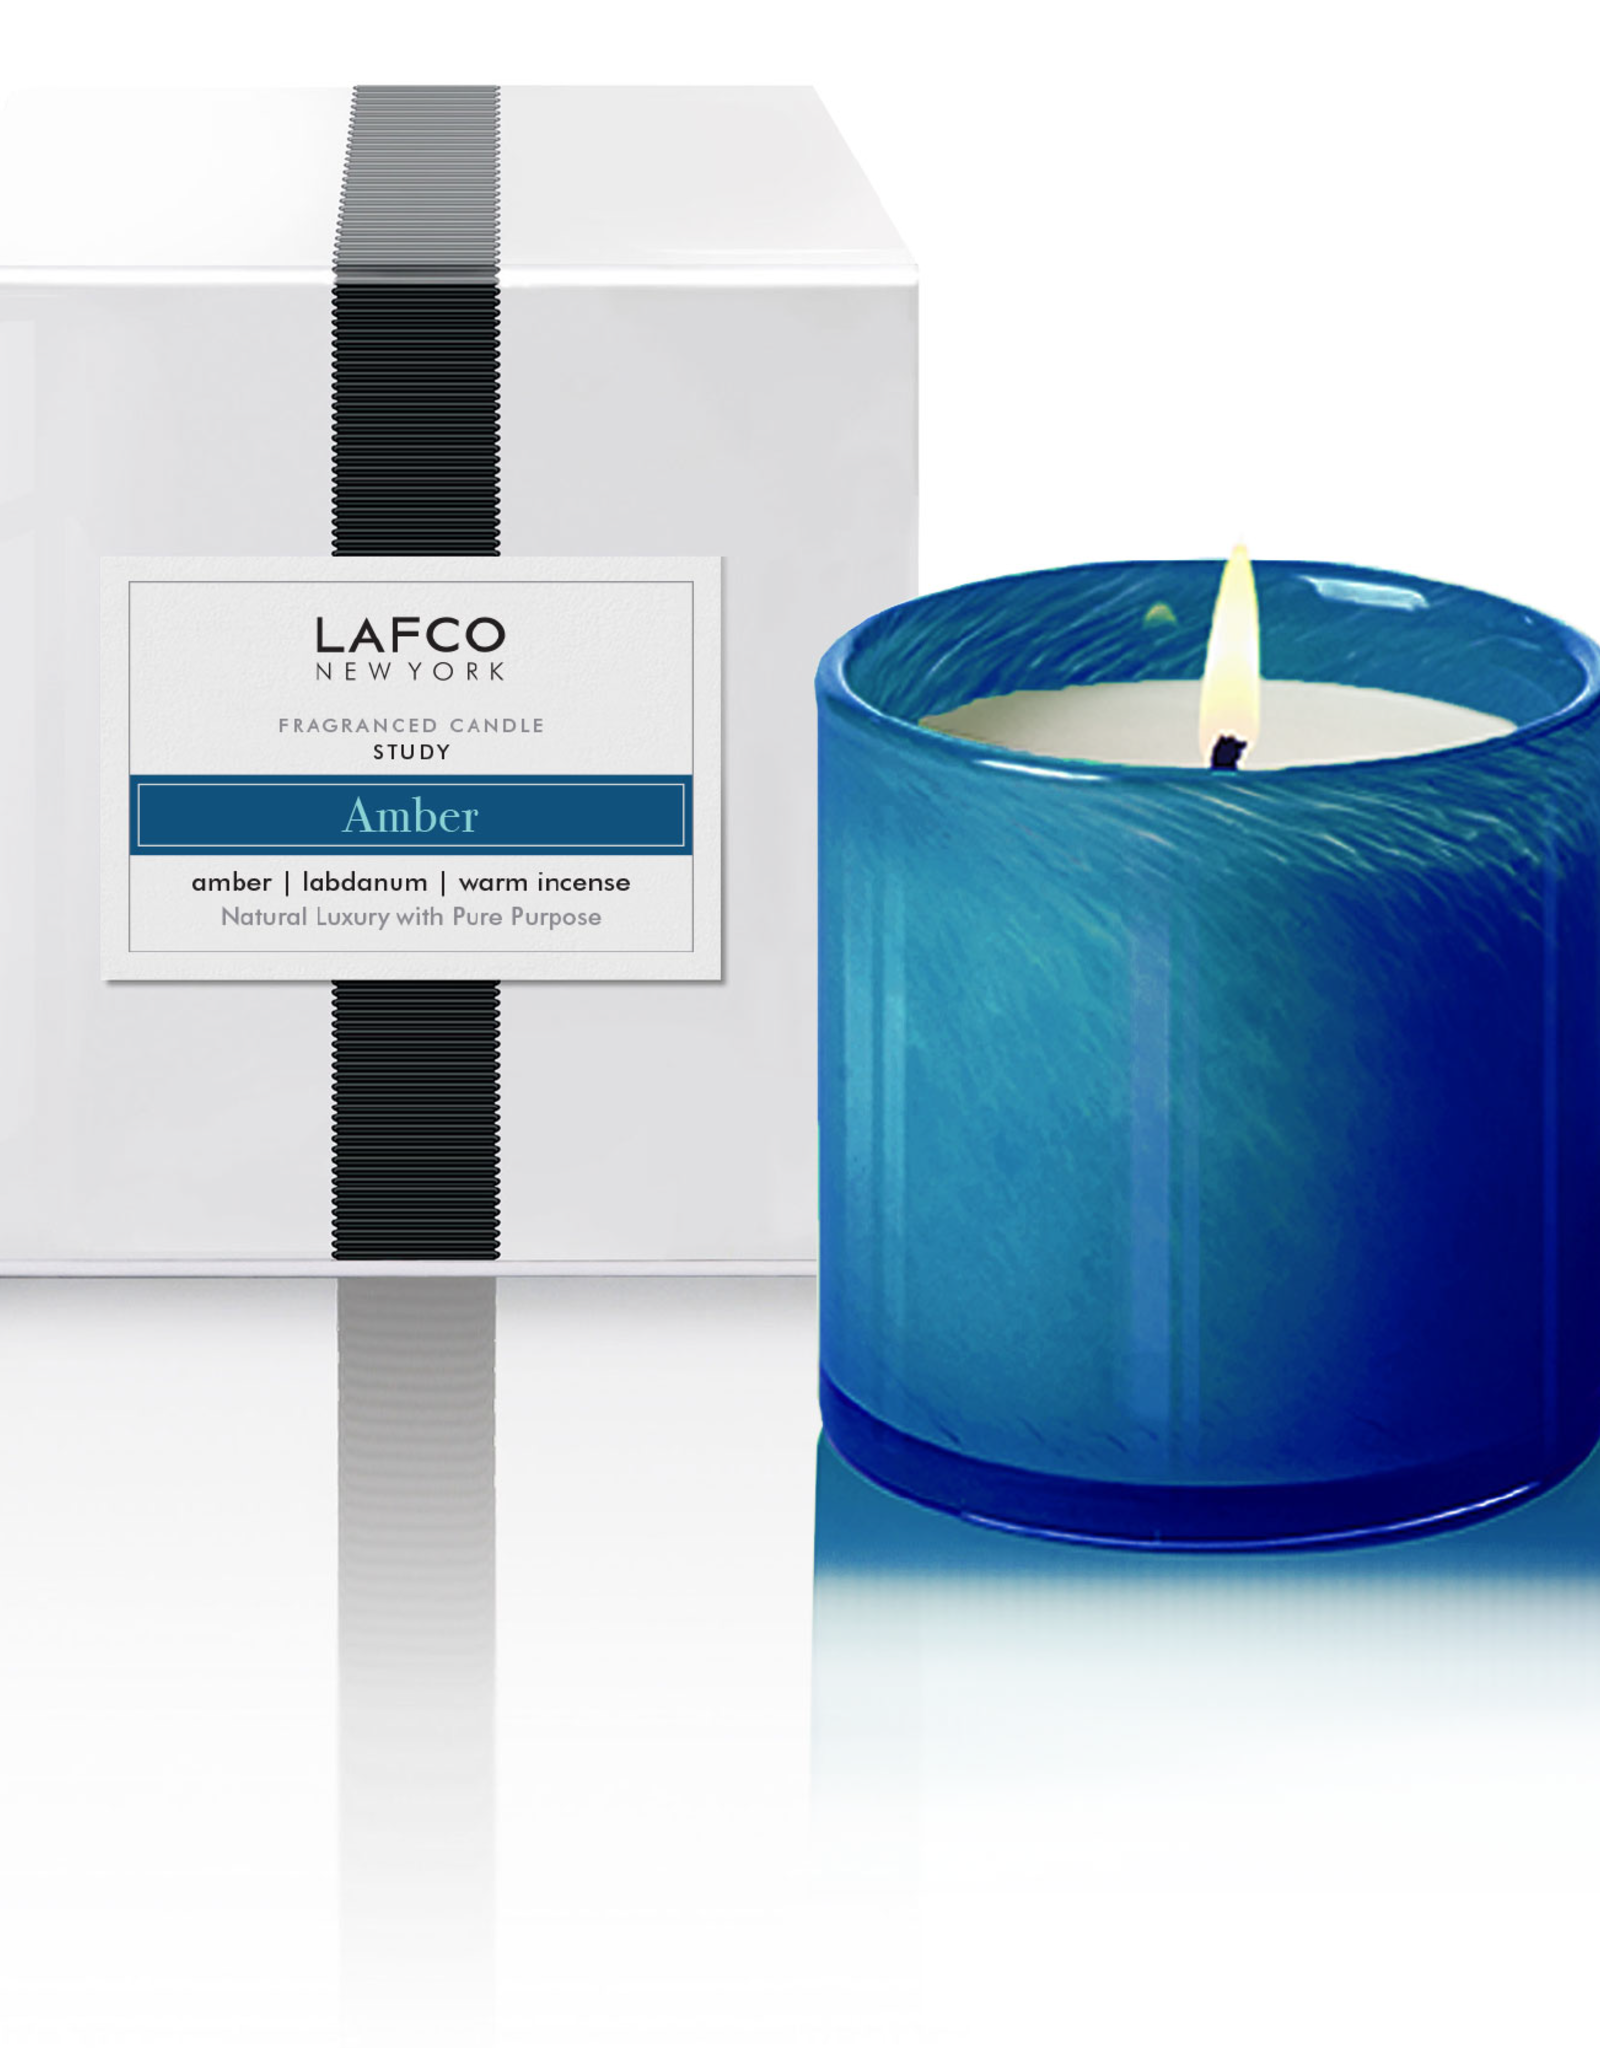 LAFCO LAFCO - 15.5 Oz Candle Study - Amber